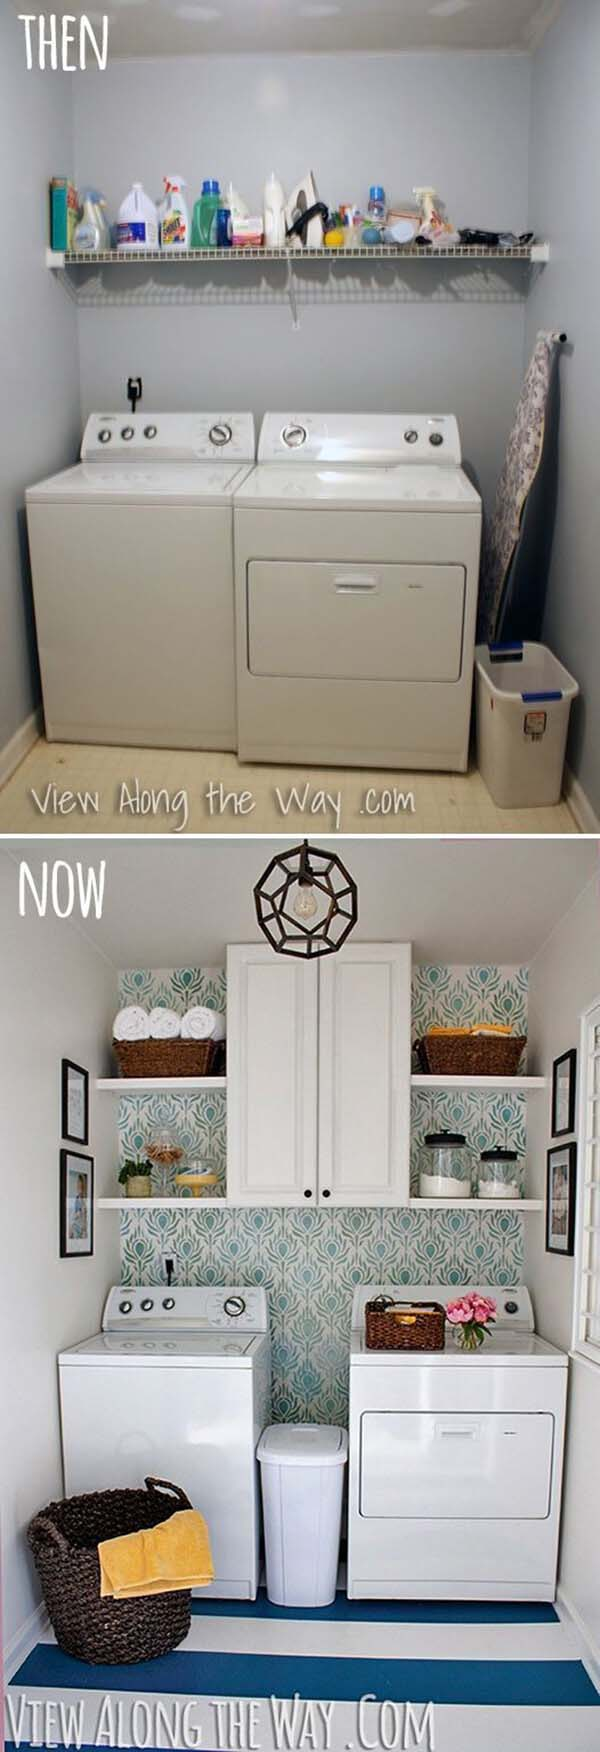 Wallpaper Wow And more Updates #laundryroom #makeover #decorhomeideas